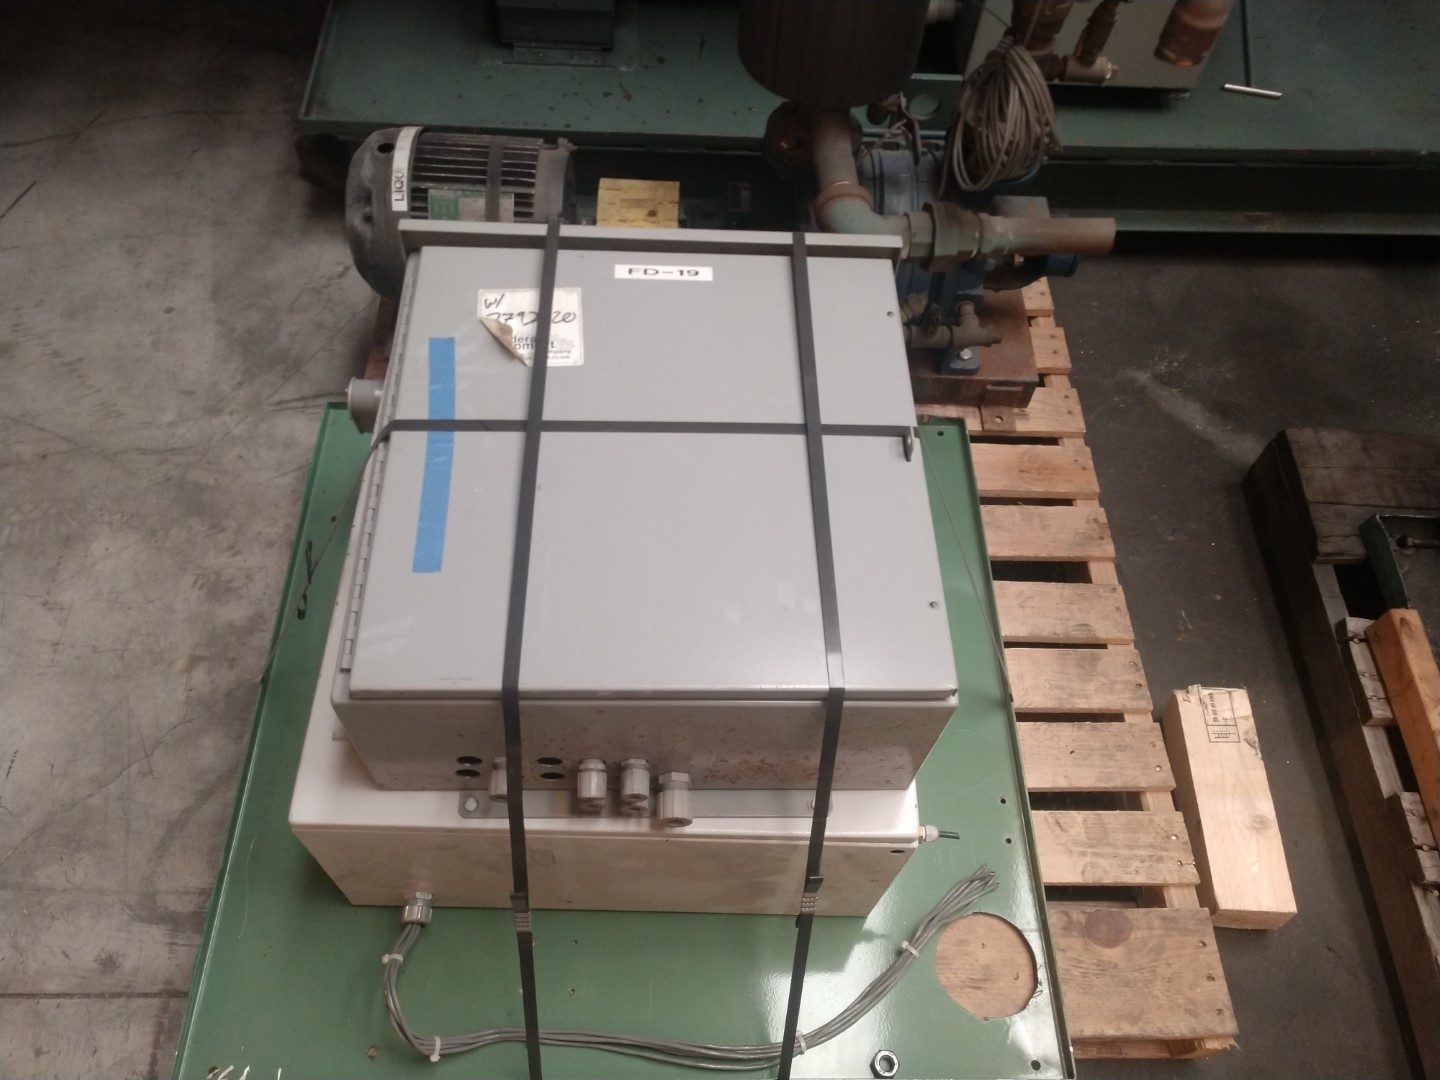 264 Sq Ft Stokes Freeze Dryer System